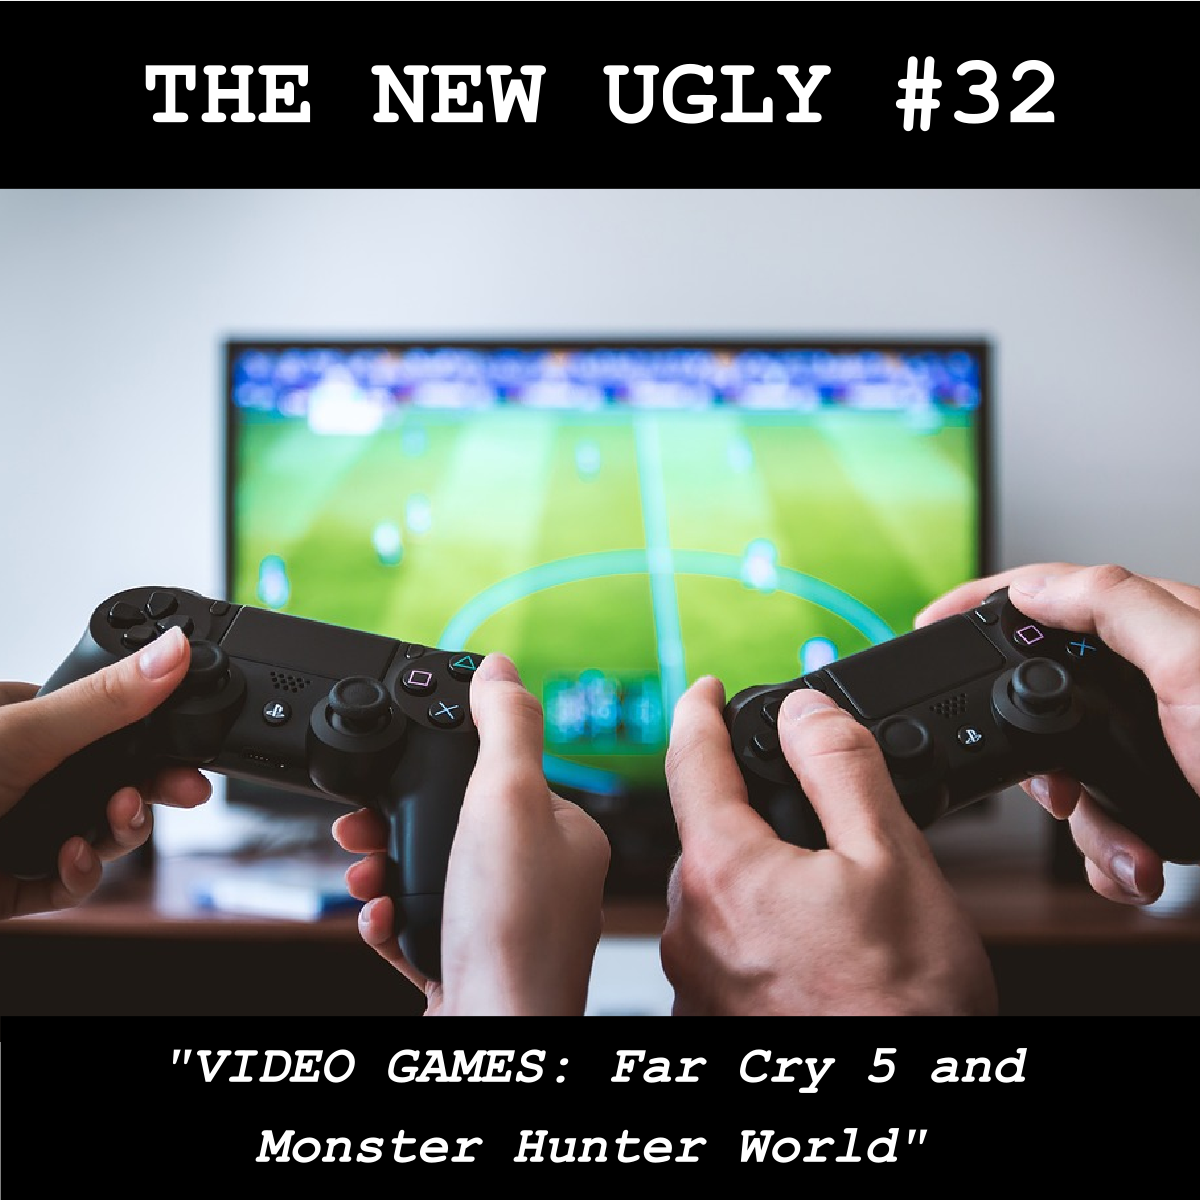 Episode 32: VIDEO GAMES: Far Cry 5 and Monster Hunter World